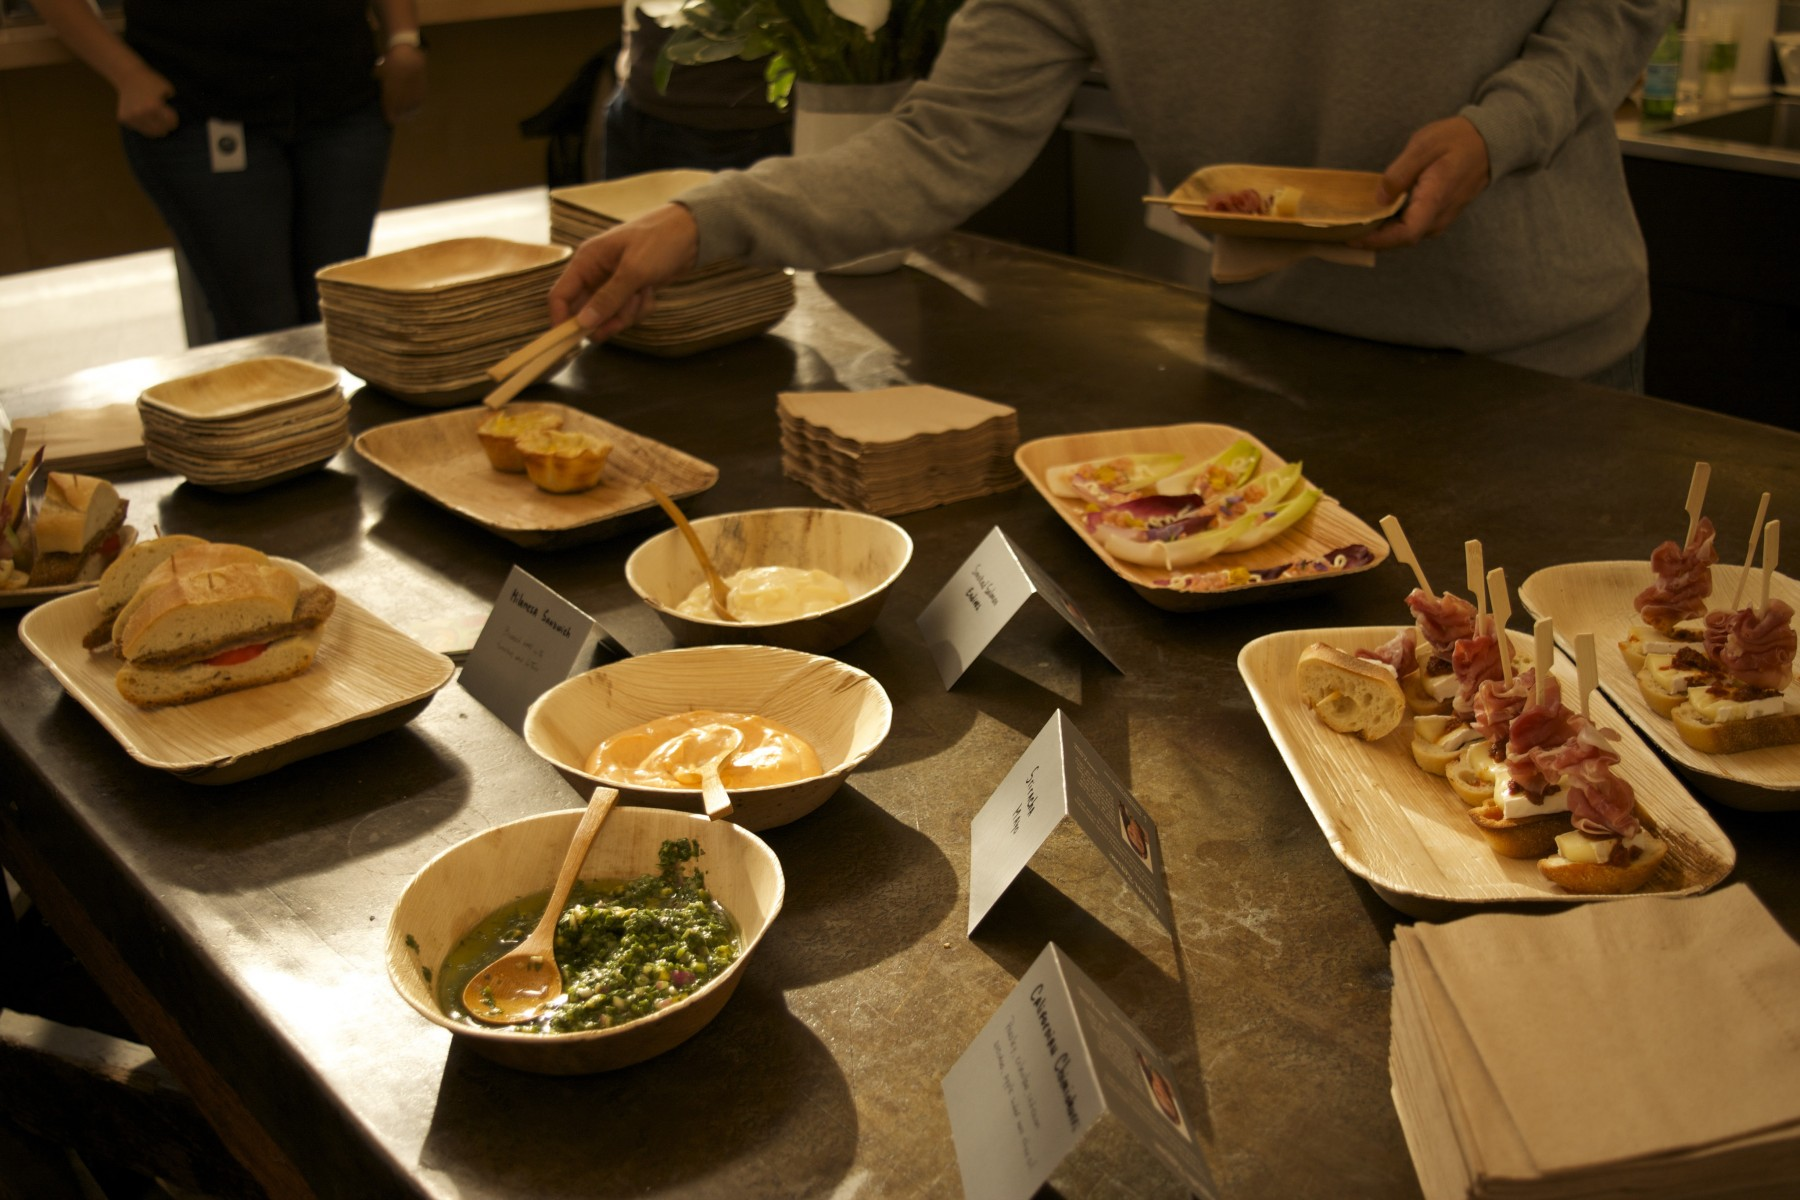 A picture of Argentinean tapas on a table.